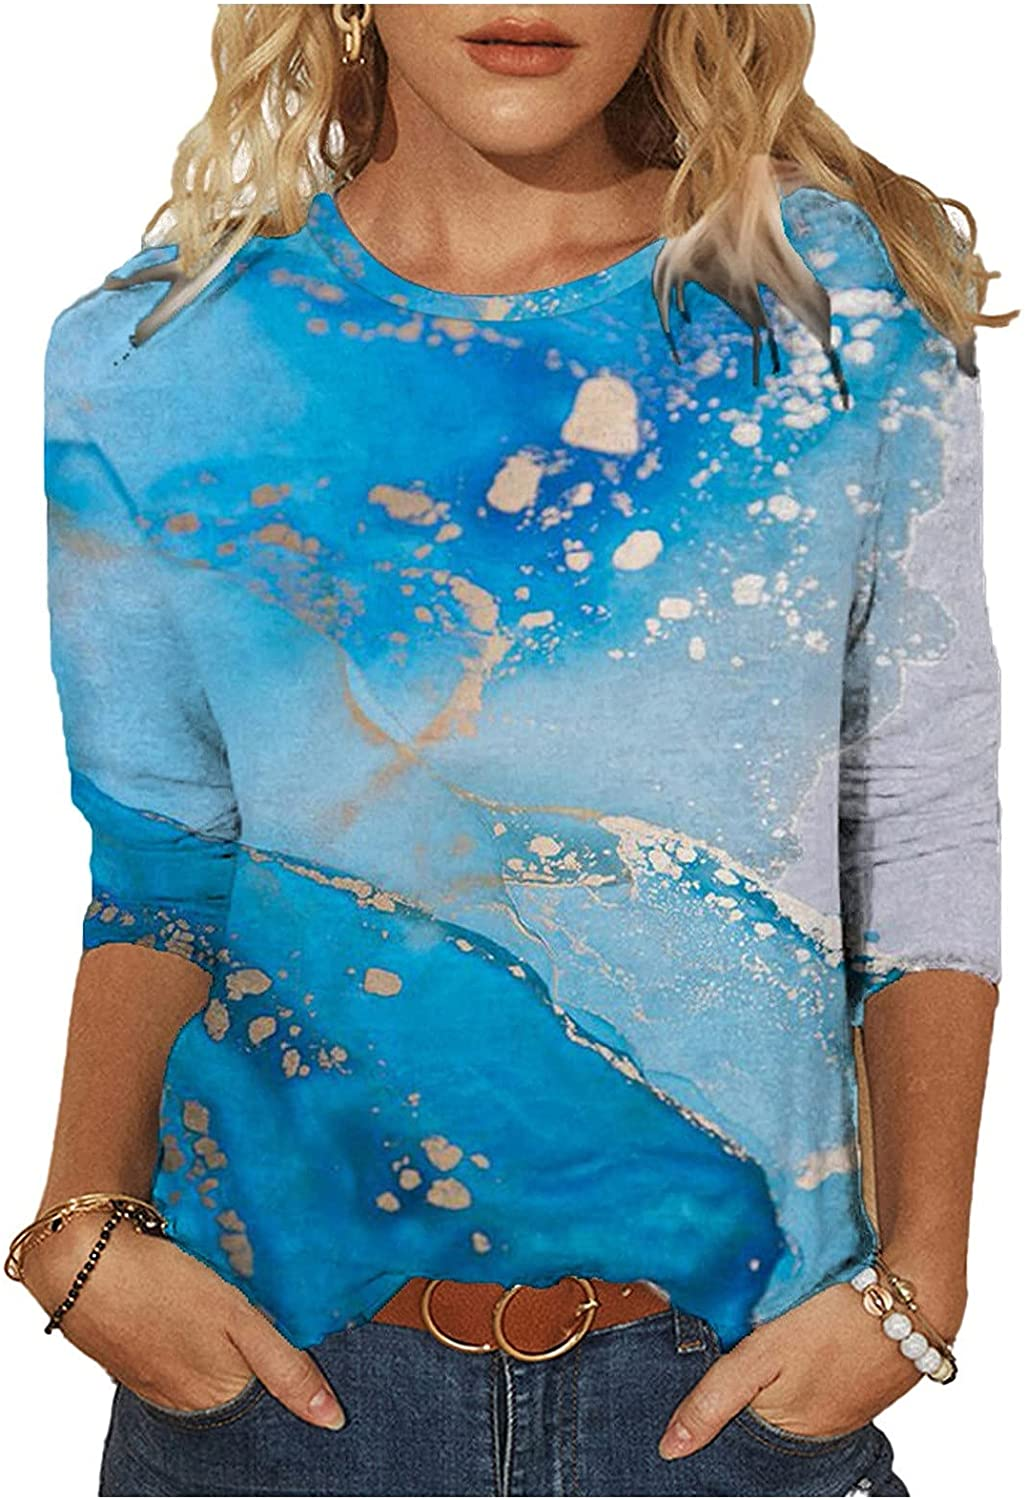 Nulairt 3/4 Sleeve Shirts for Women, Womens Tunic Tops Floral Print T Shirts Crewneck Causal Pullover Blouses Basic Tees